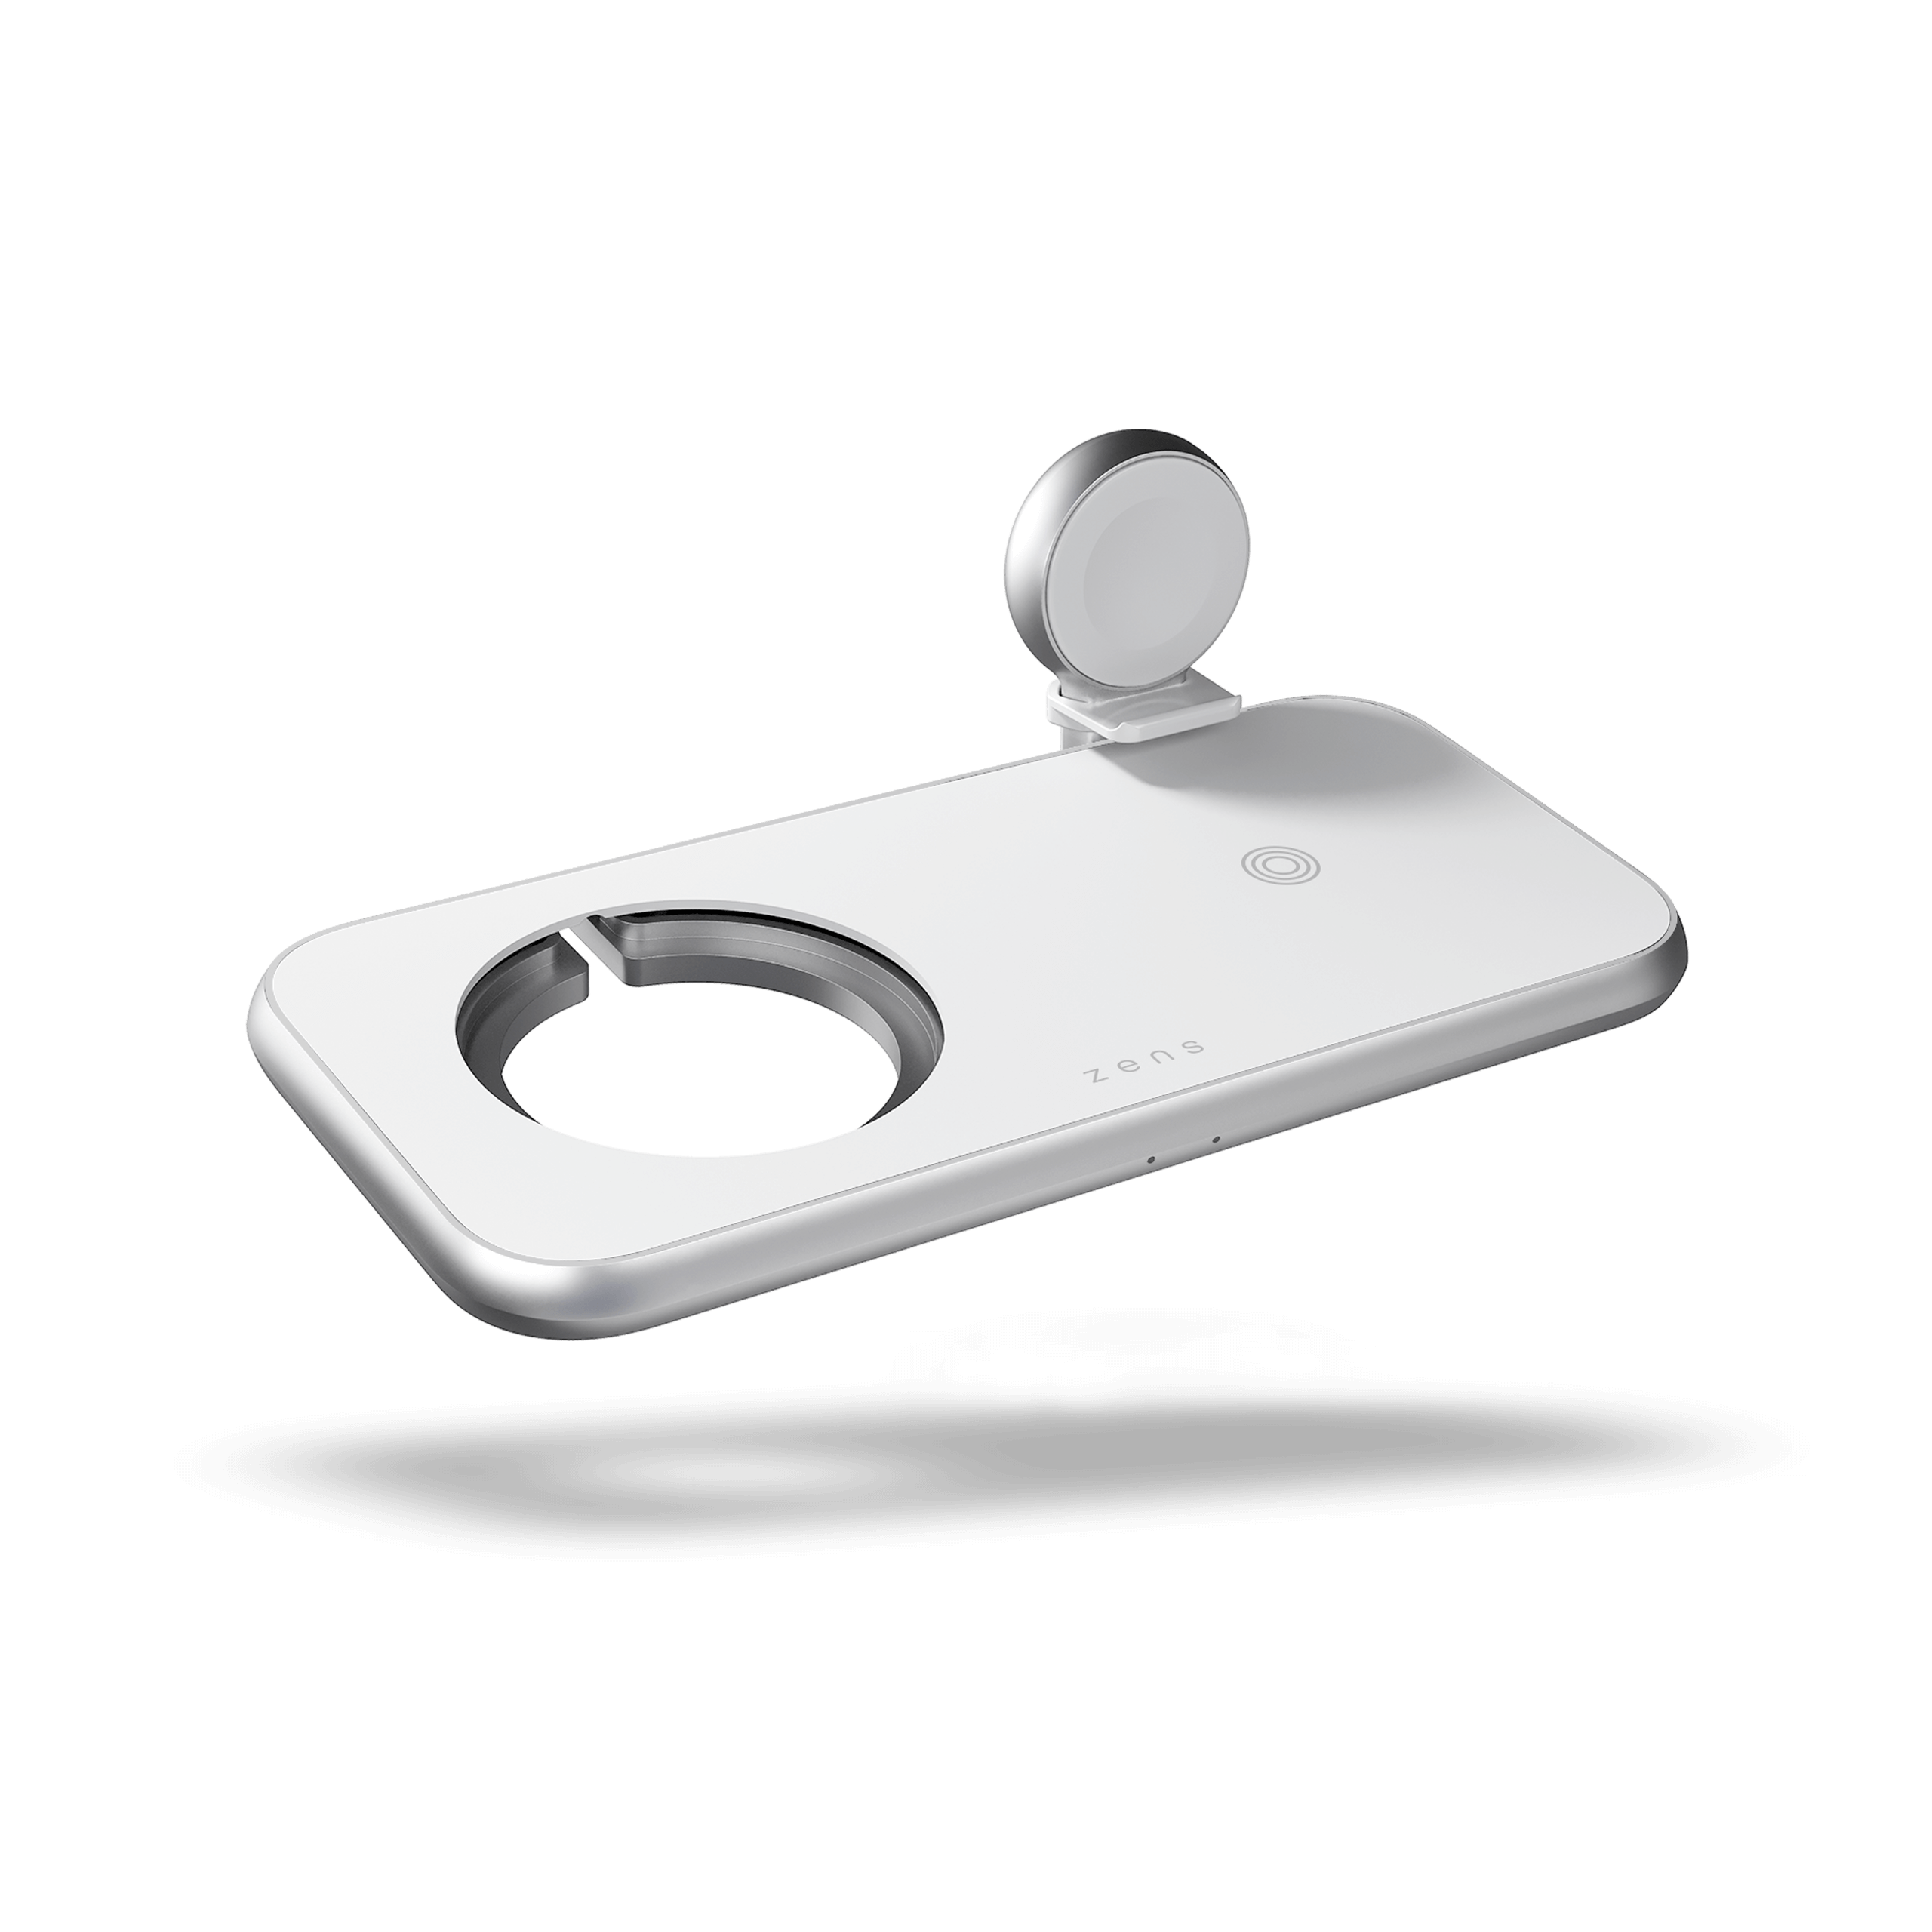 ZEDC17W - Zens 4-in-1 Wireless Charger Aluminium Designed for MagSafe